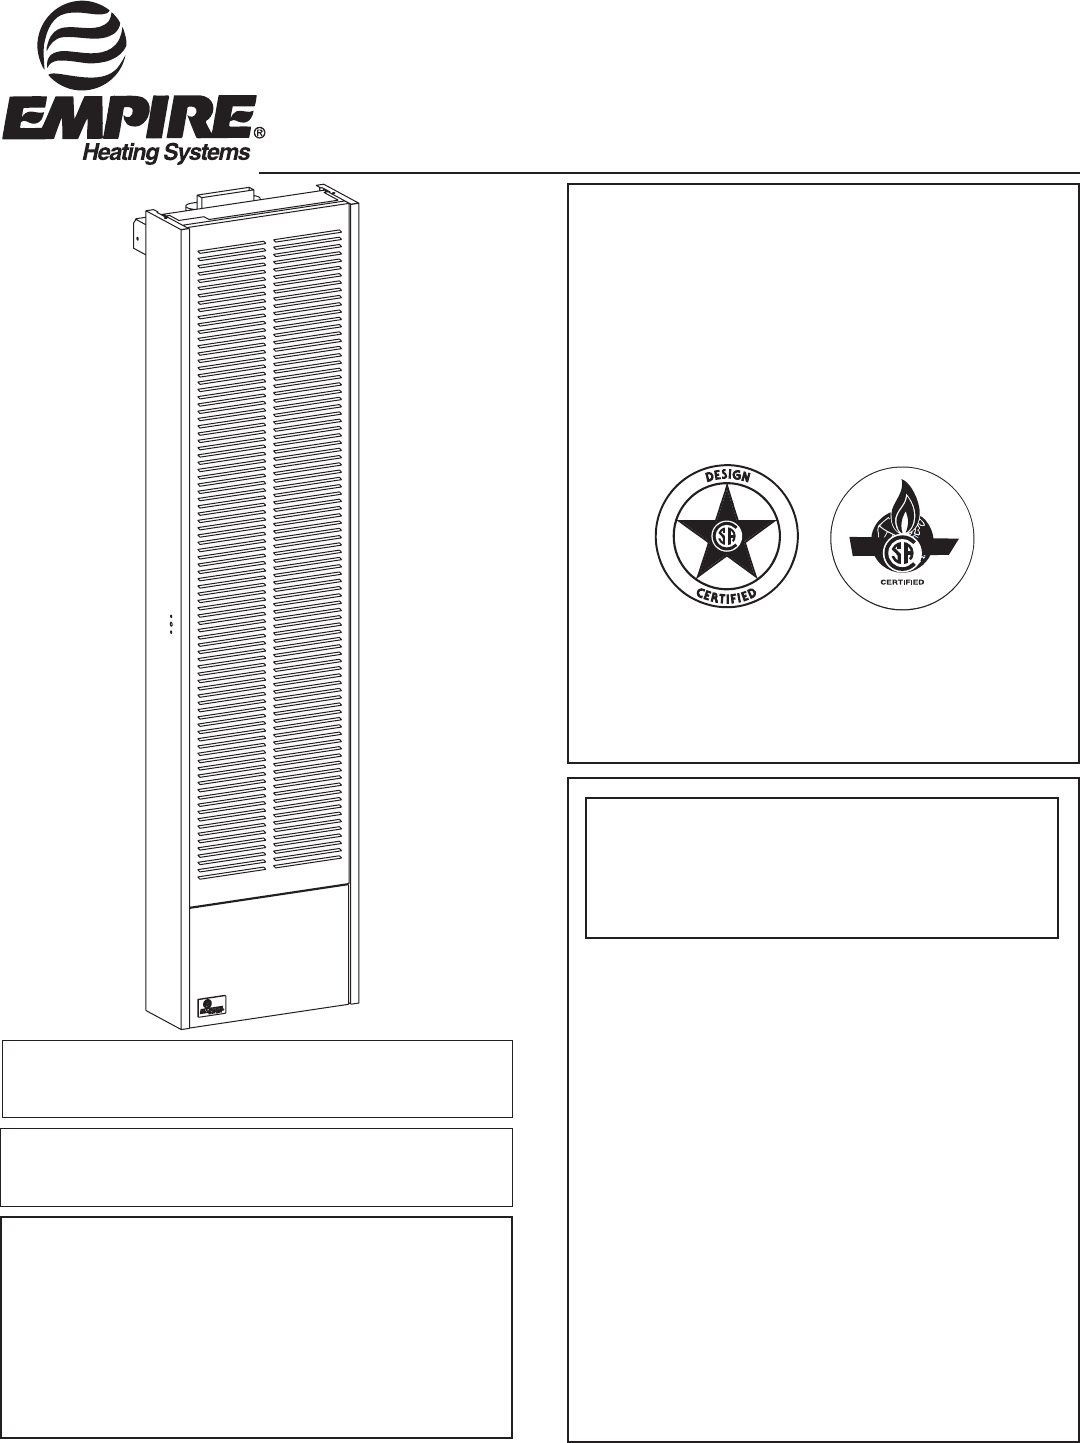 Empire Products Gwt 25 2 35 Rb Installation Instructions Wiring Diagrams Gravity Vented